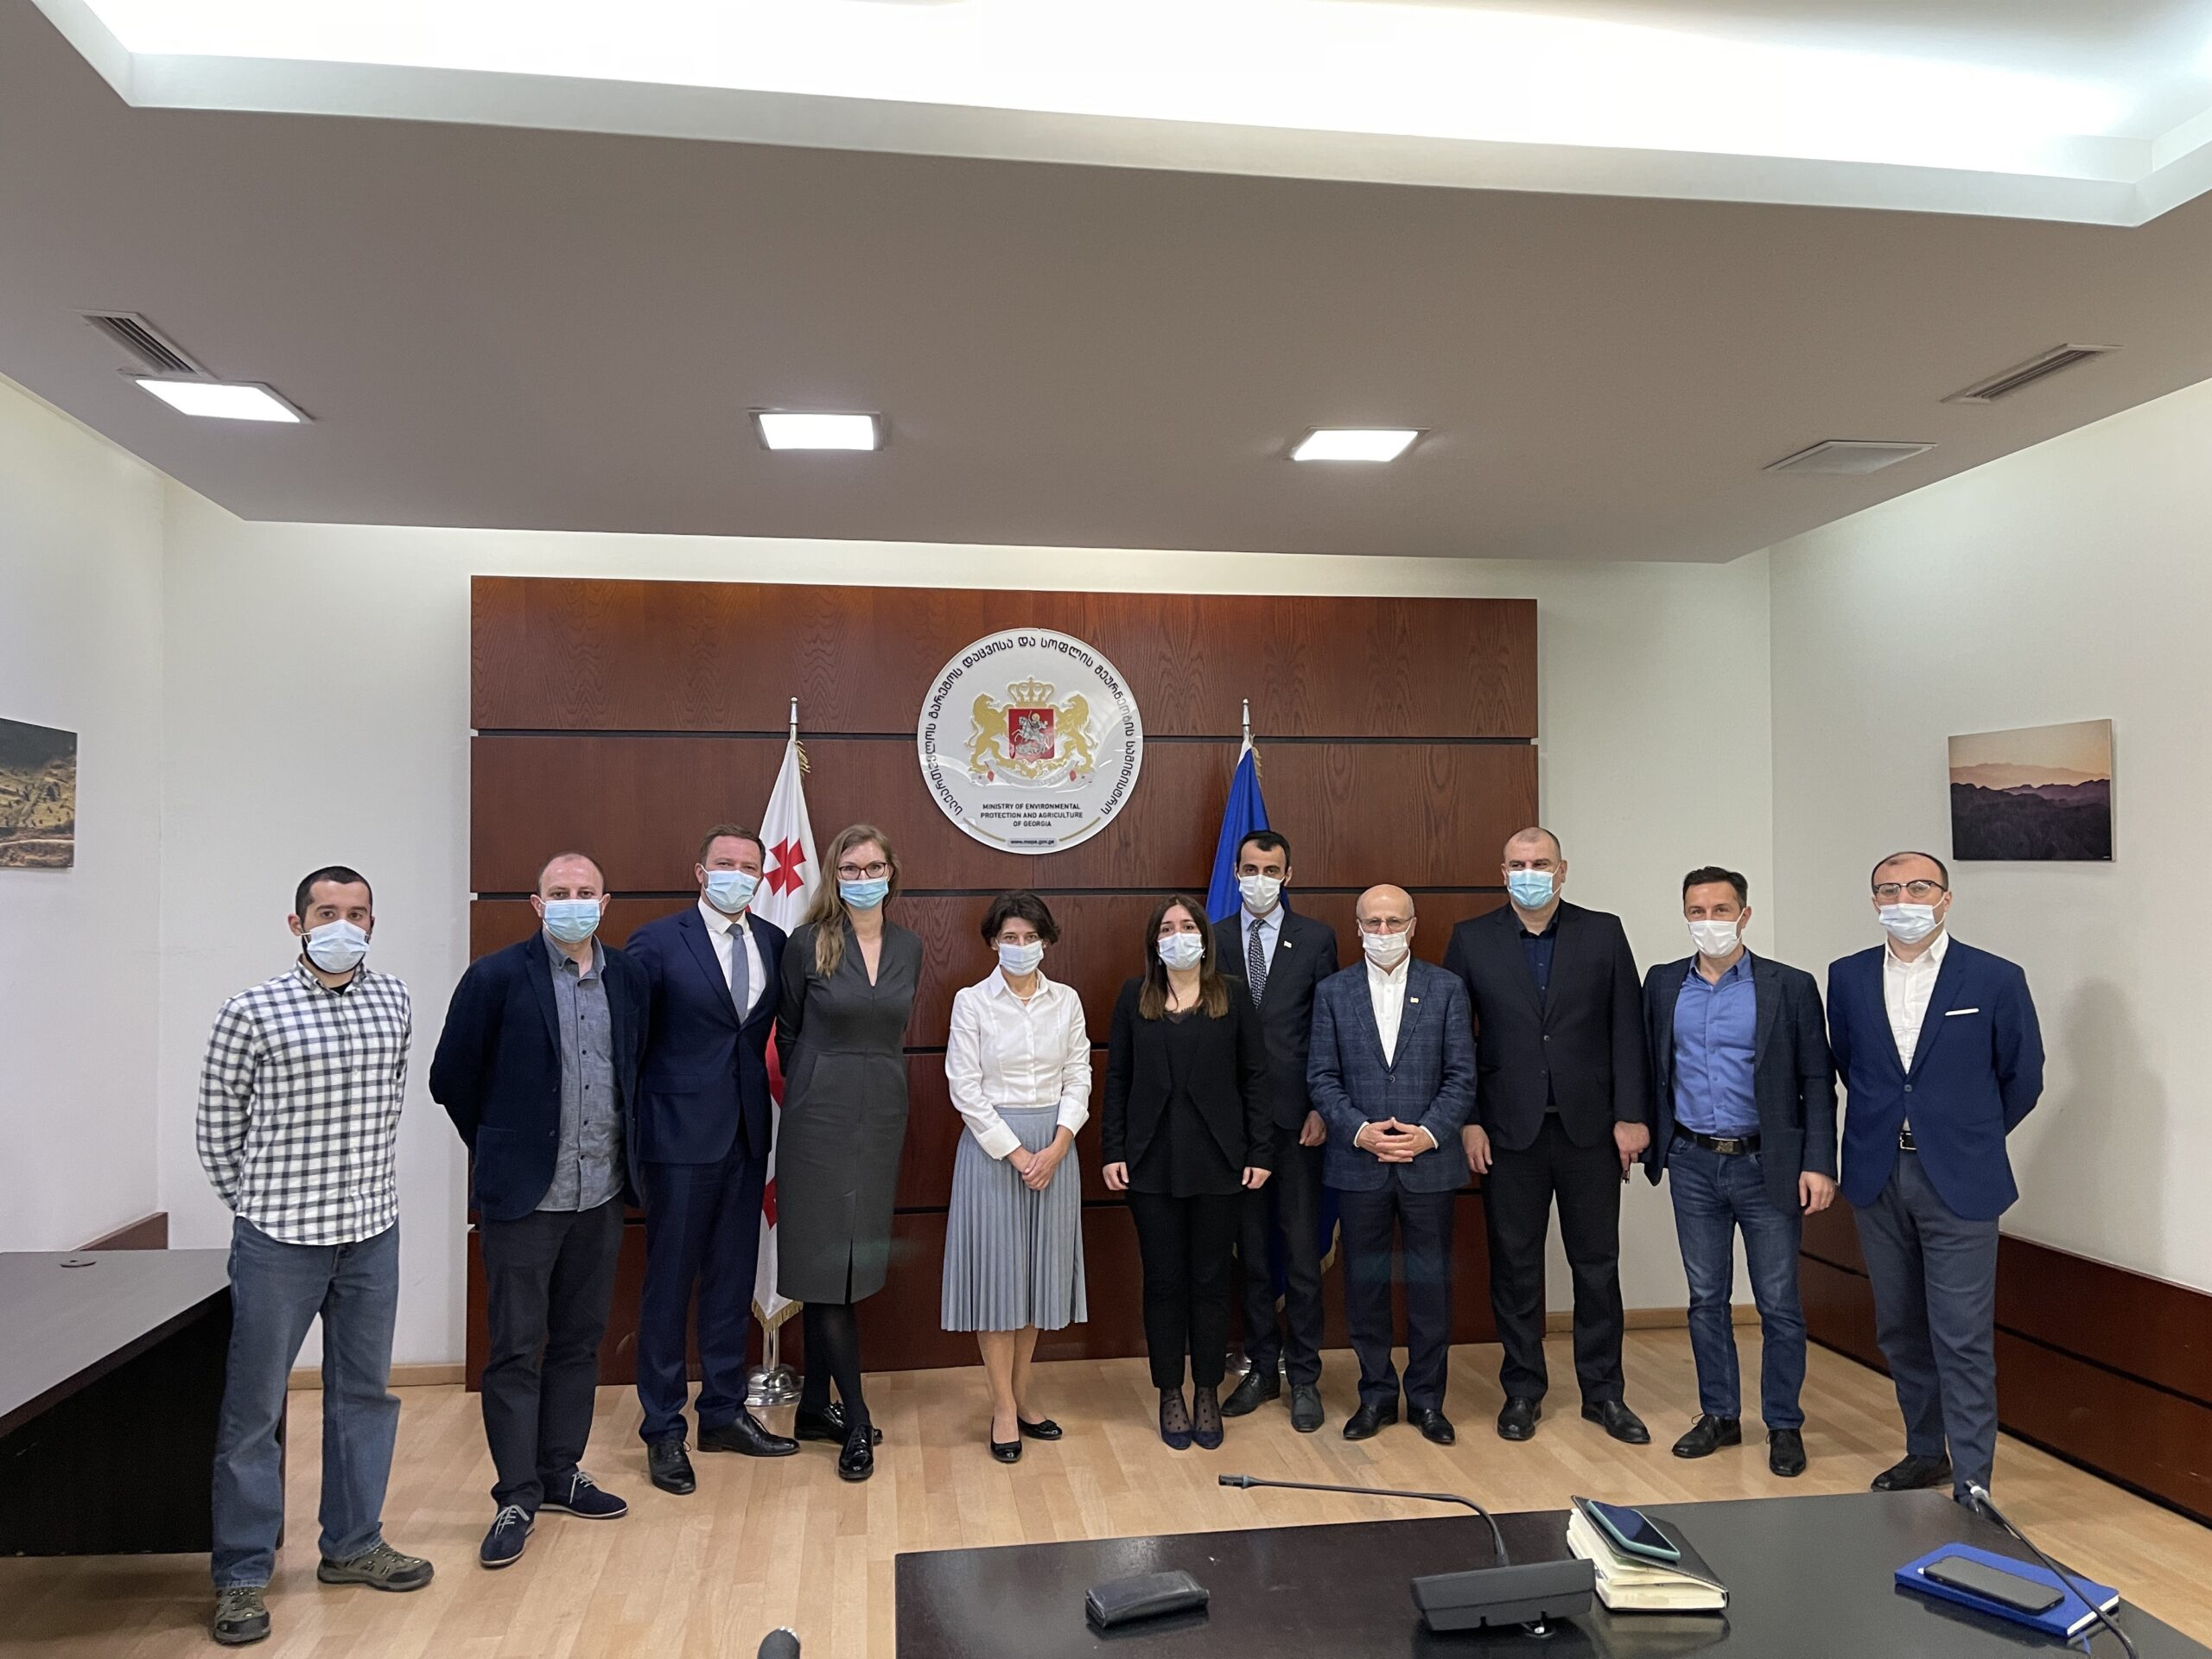 Timbeter and the government of Georgia started cooperation to strengthen the sustainable forestry practices in Georgia